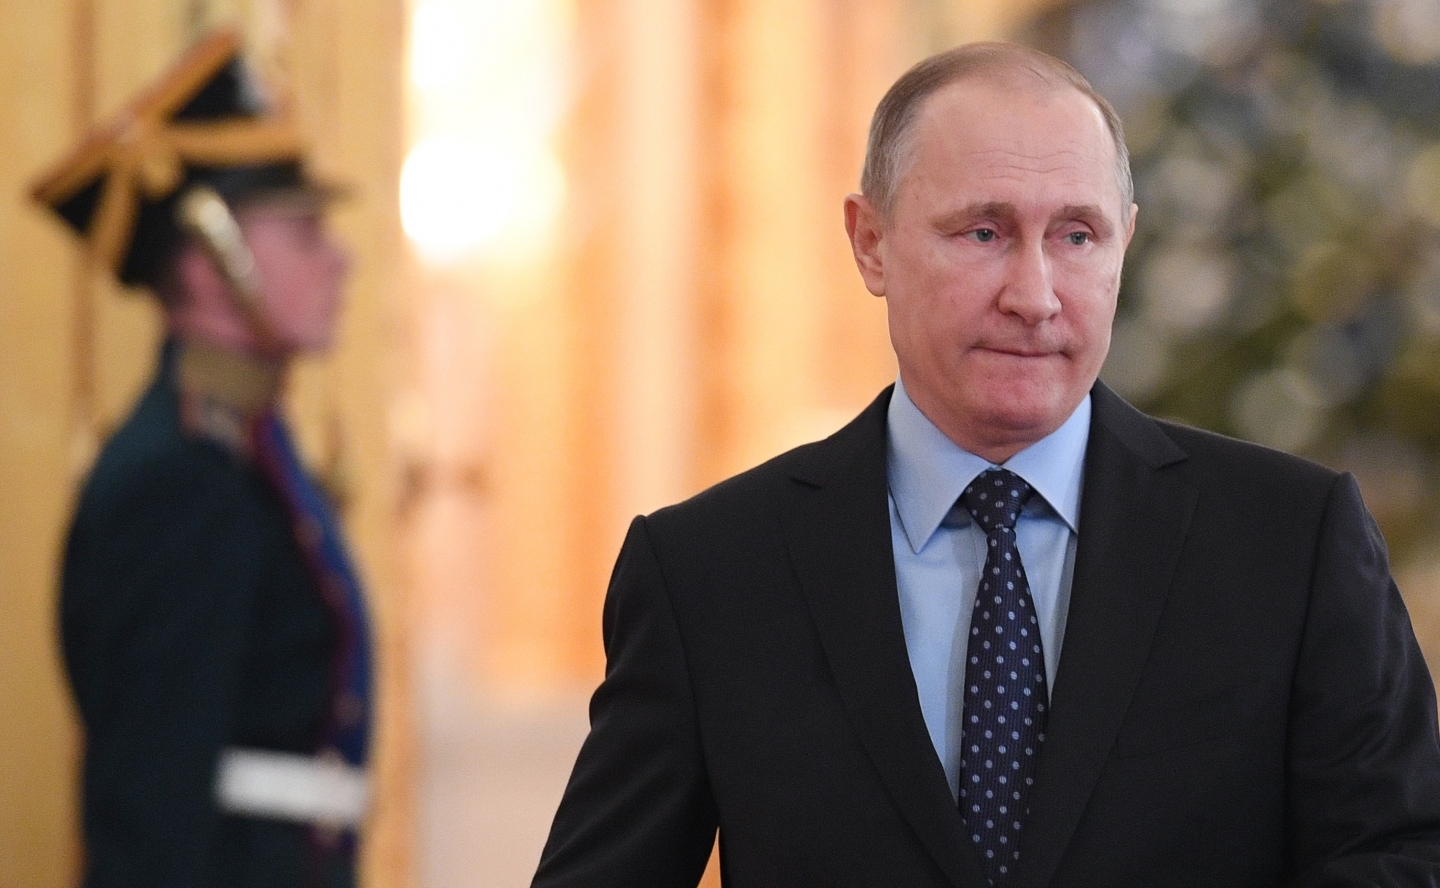 Russian President Vladimir Putin in Kremlin (Natalia Kolesnikova/ Pool photo via AP)